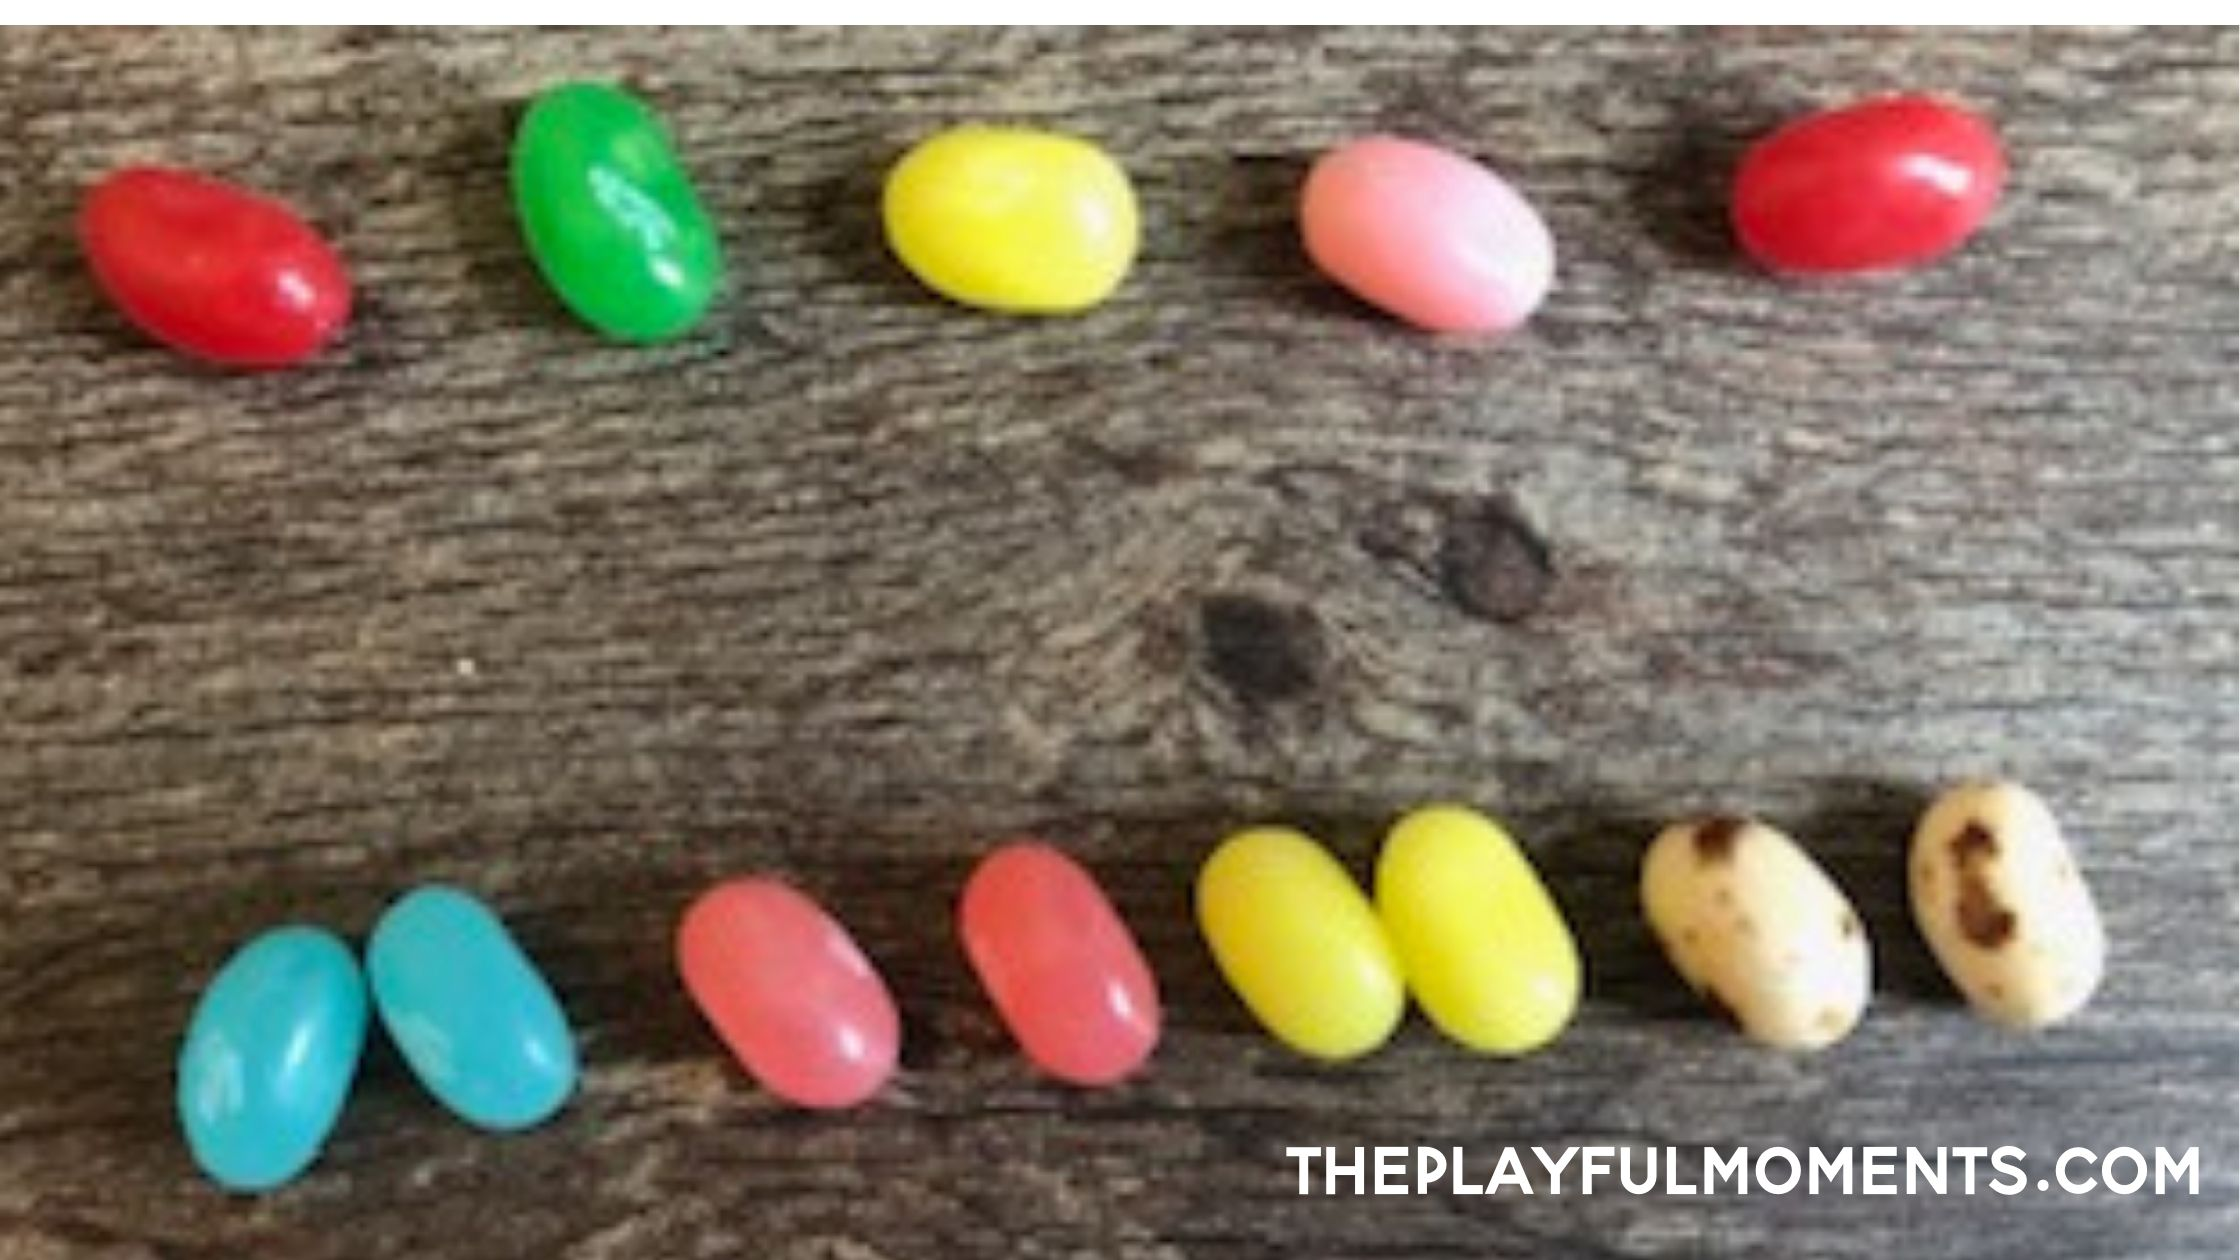 Patterns of jelly beans